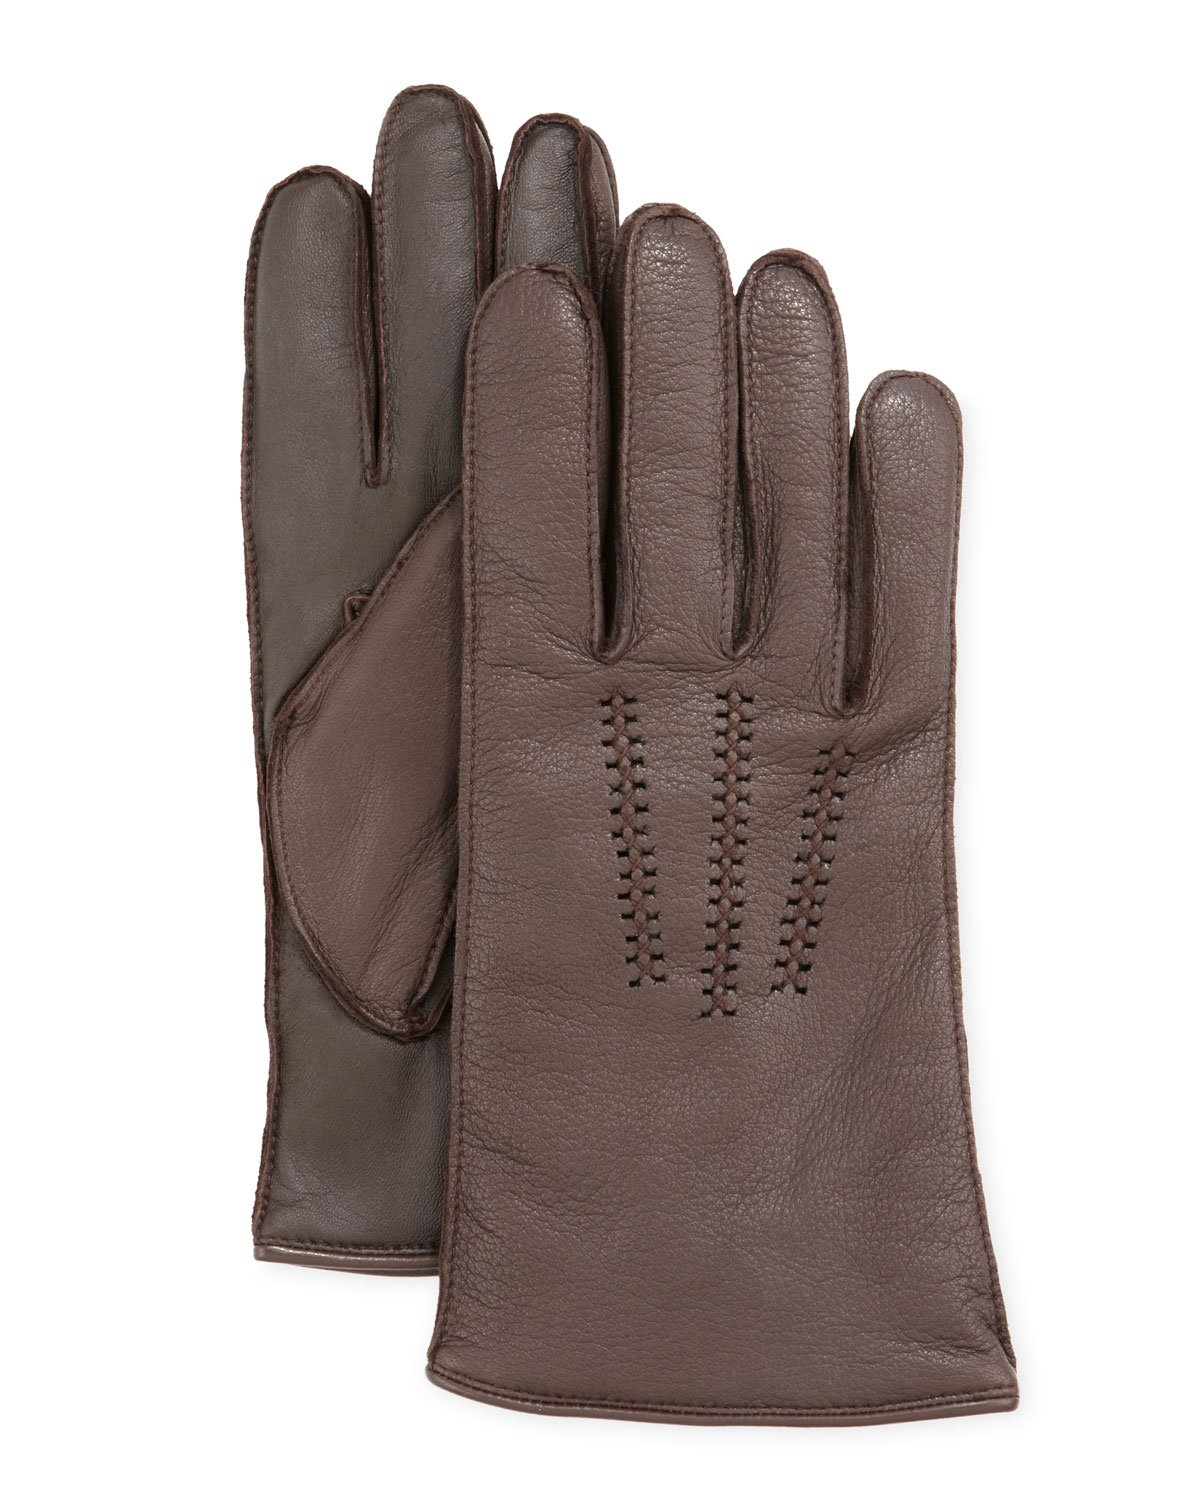 Mens Leather Sheepskin Gloves. Seeking the best mens leather sheepskin gloves with good quality and affordable prices from DHgate Australia site. We provide a variety of ladies sun gloves online supplied by reliable sellers around the world. Helping you step by step of finding cheap dj gloves is what we aim for.